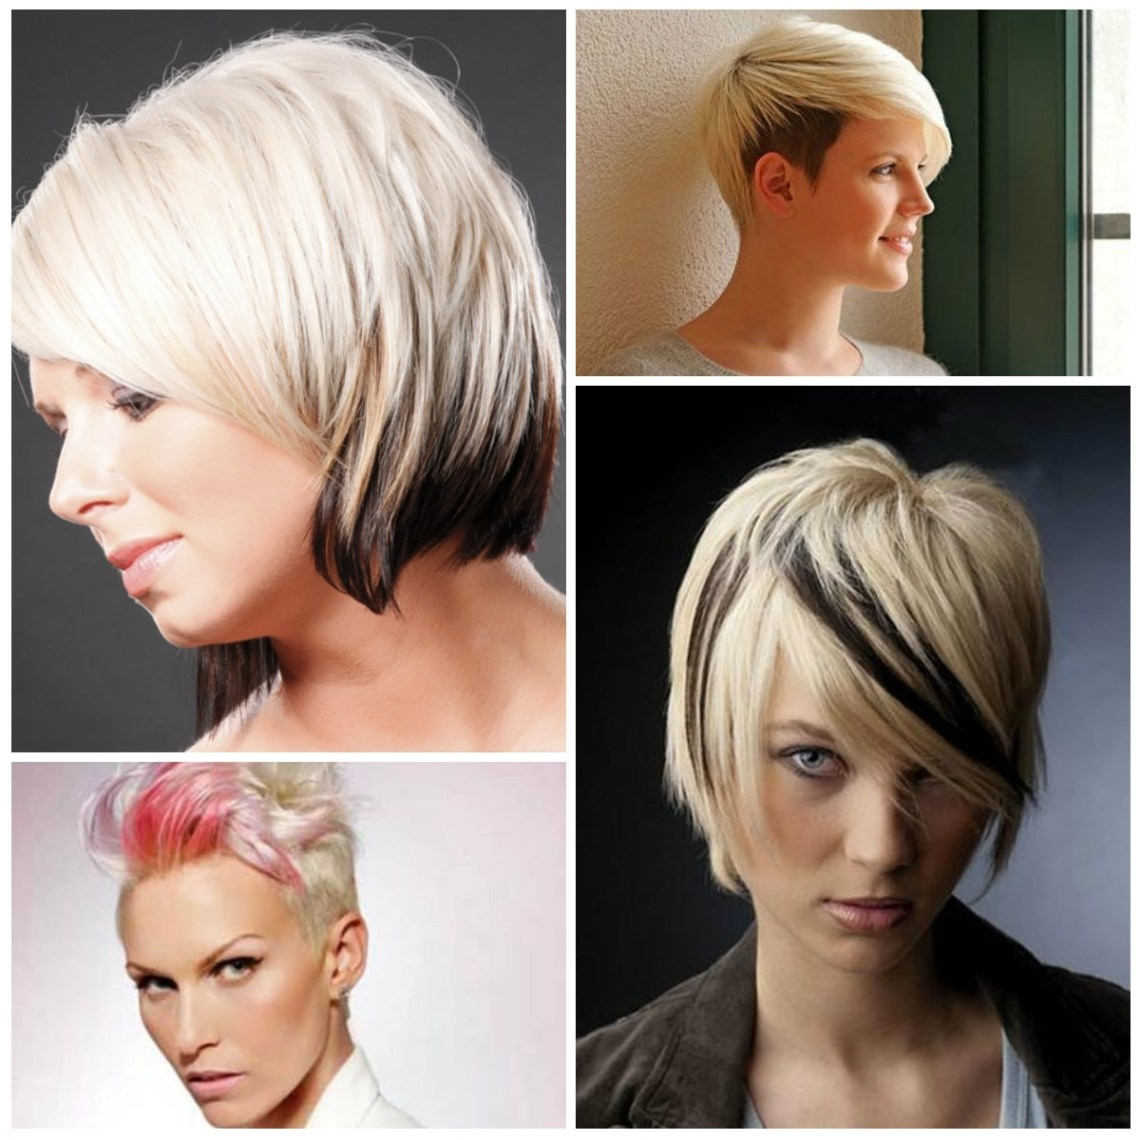 2016 Two Tone Hair Colors For Short Haircuts | 2021 Haircuts 40+ Adorable Medium Length Two Tone Hair Color Short Hairstyles